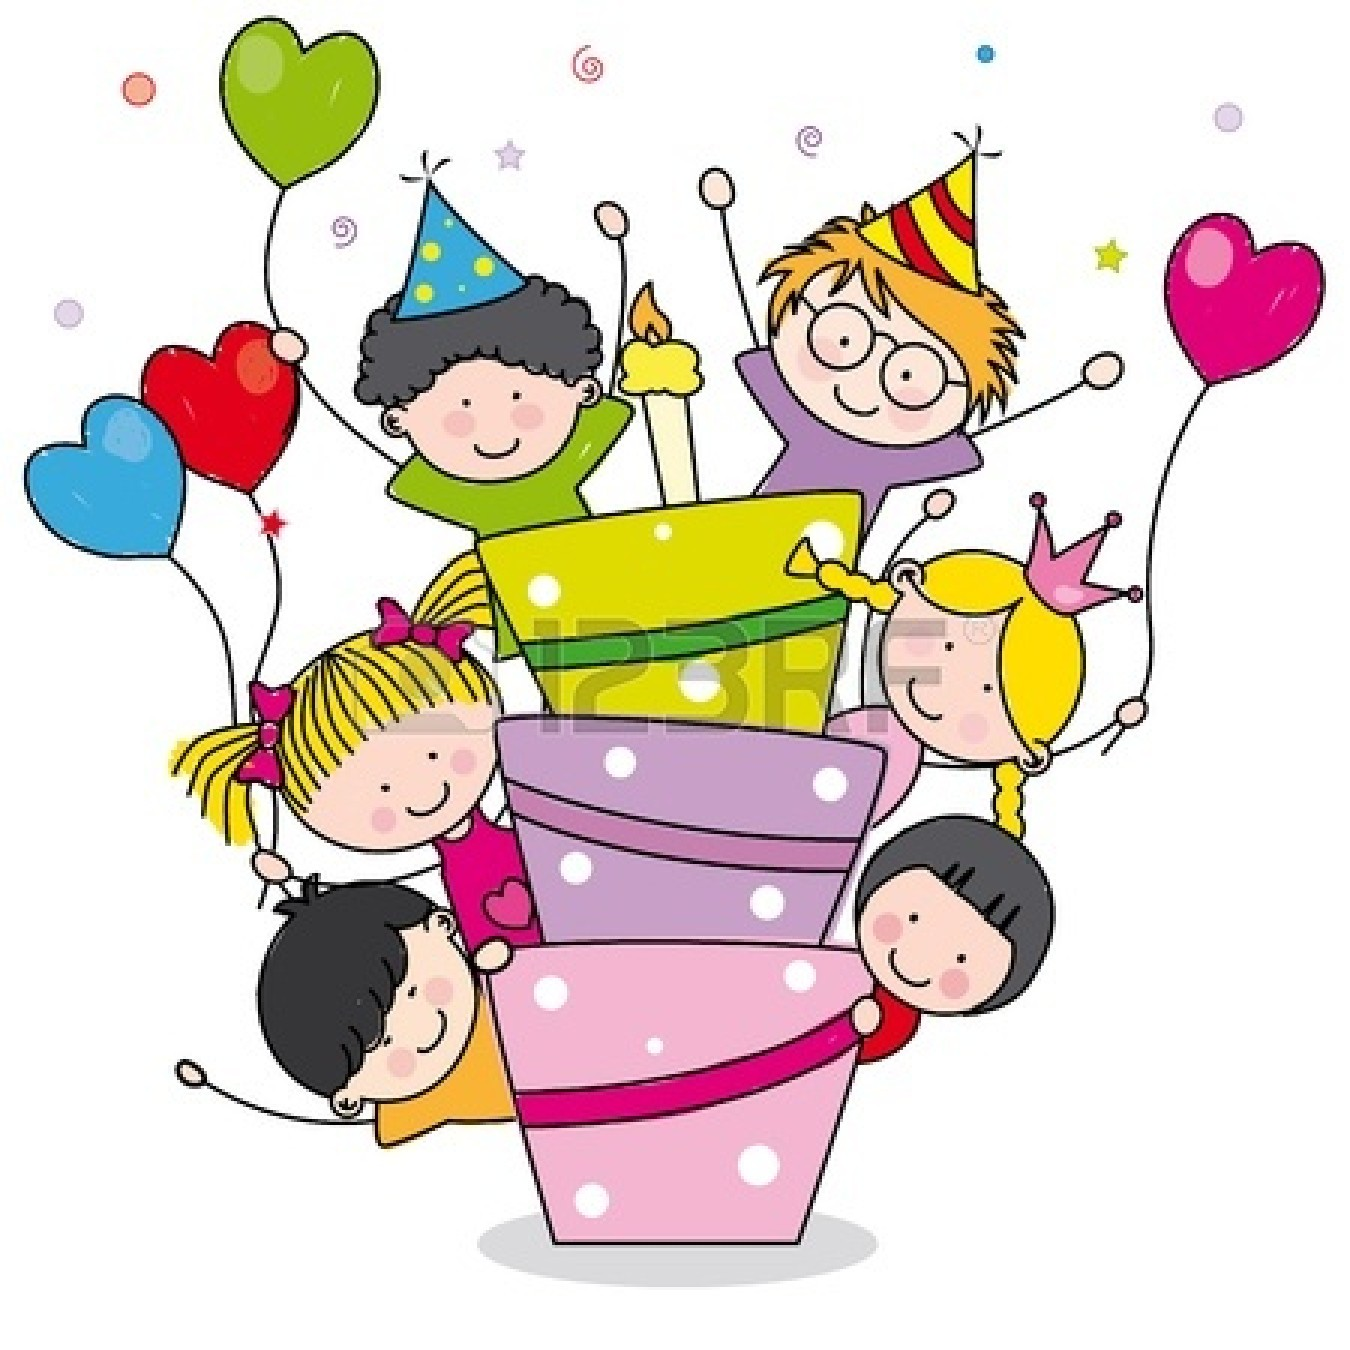 birthday party clip art pictures ; birthday-20cards-20clip-20art-14404106-birthday-card-children-at-birthday-party